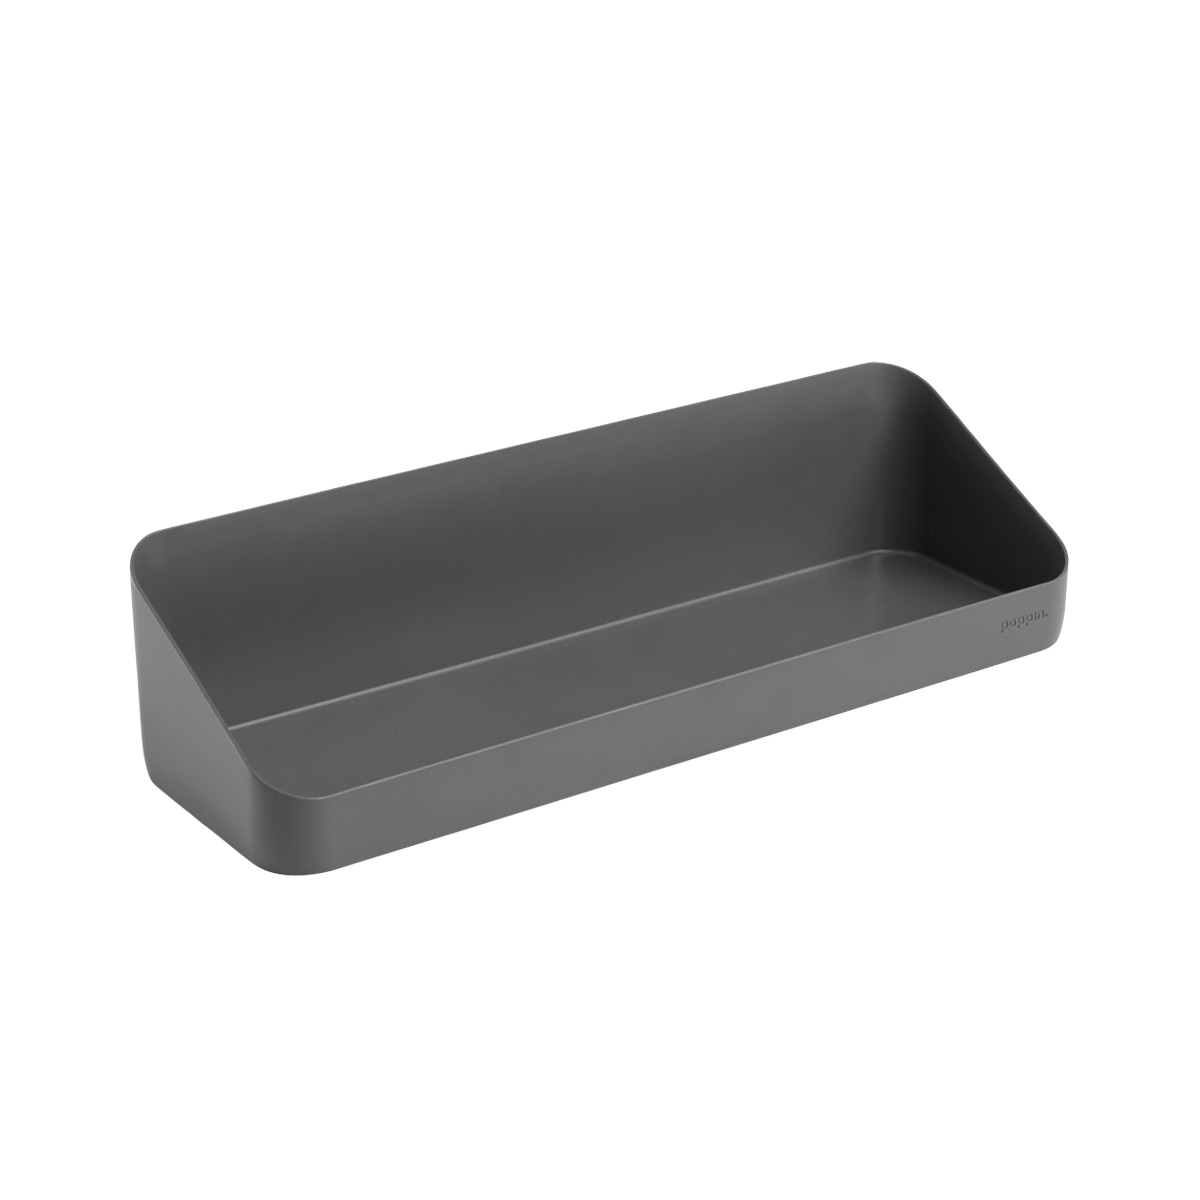 Dark Grey Poppin Magnetic Wall Shelf